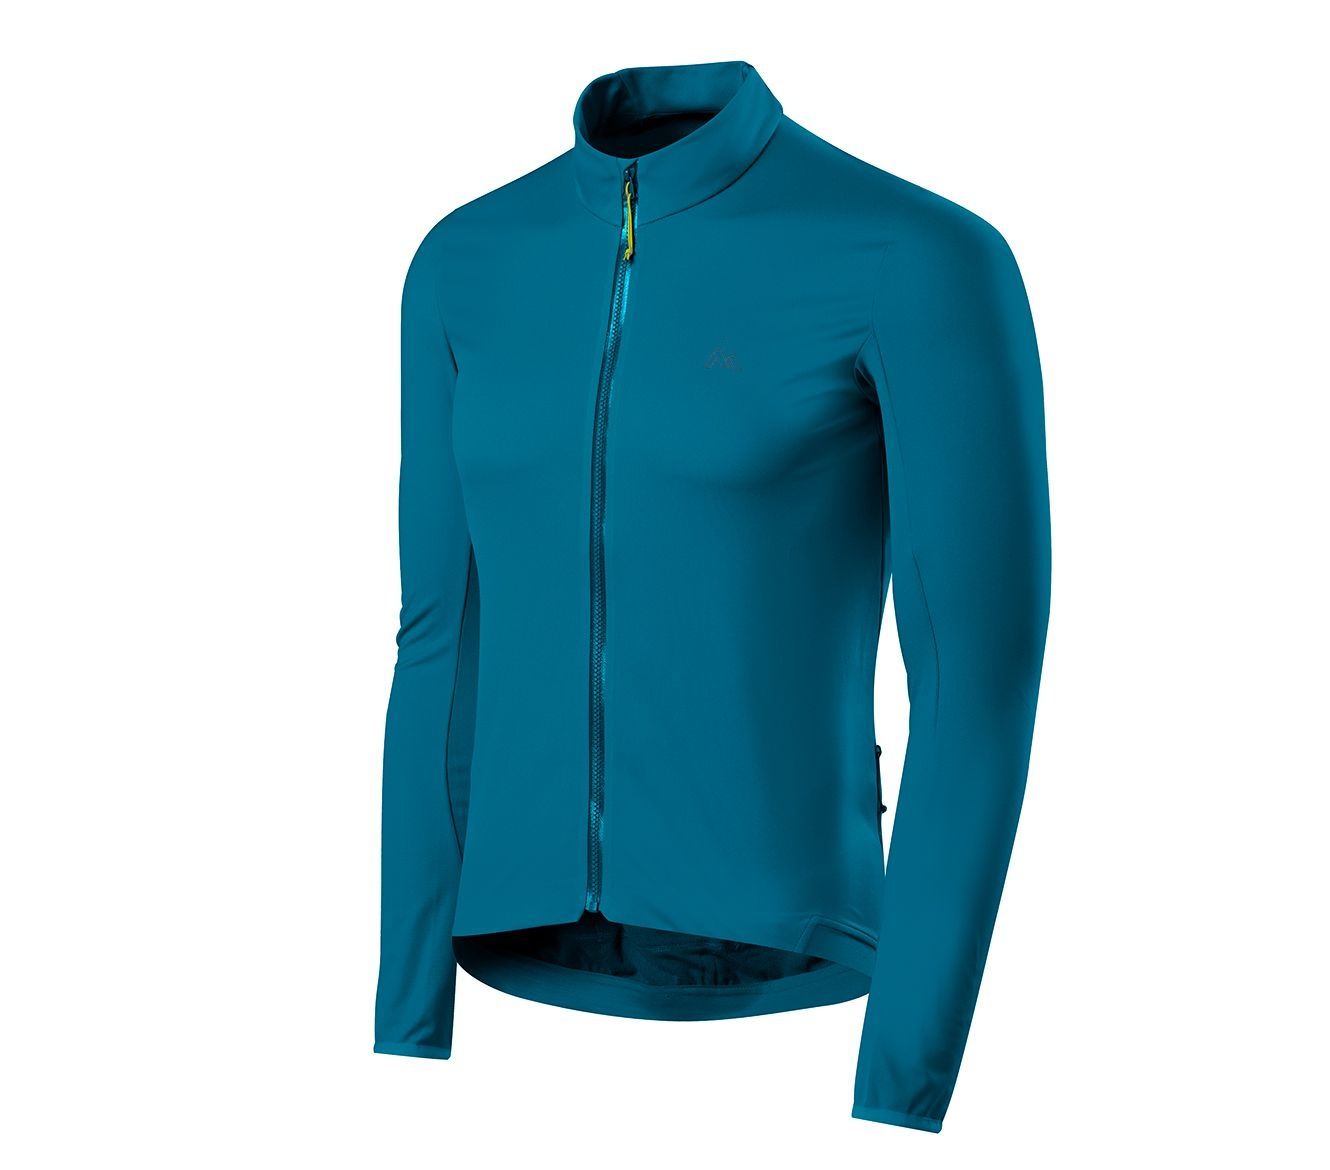 7Mesh 7Mesh Synergy LS Jersey